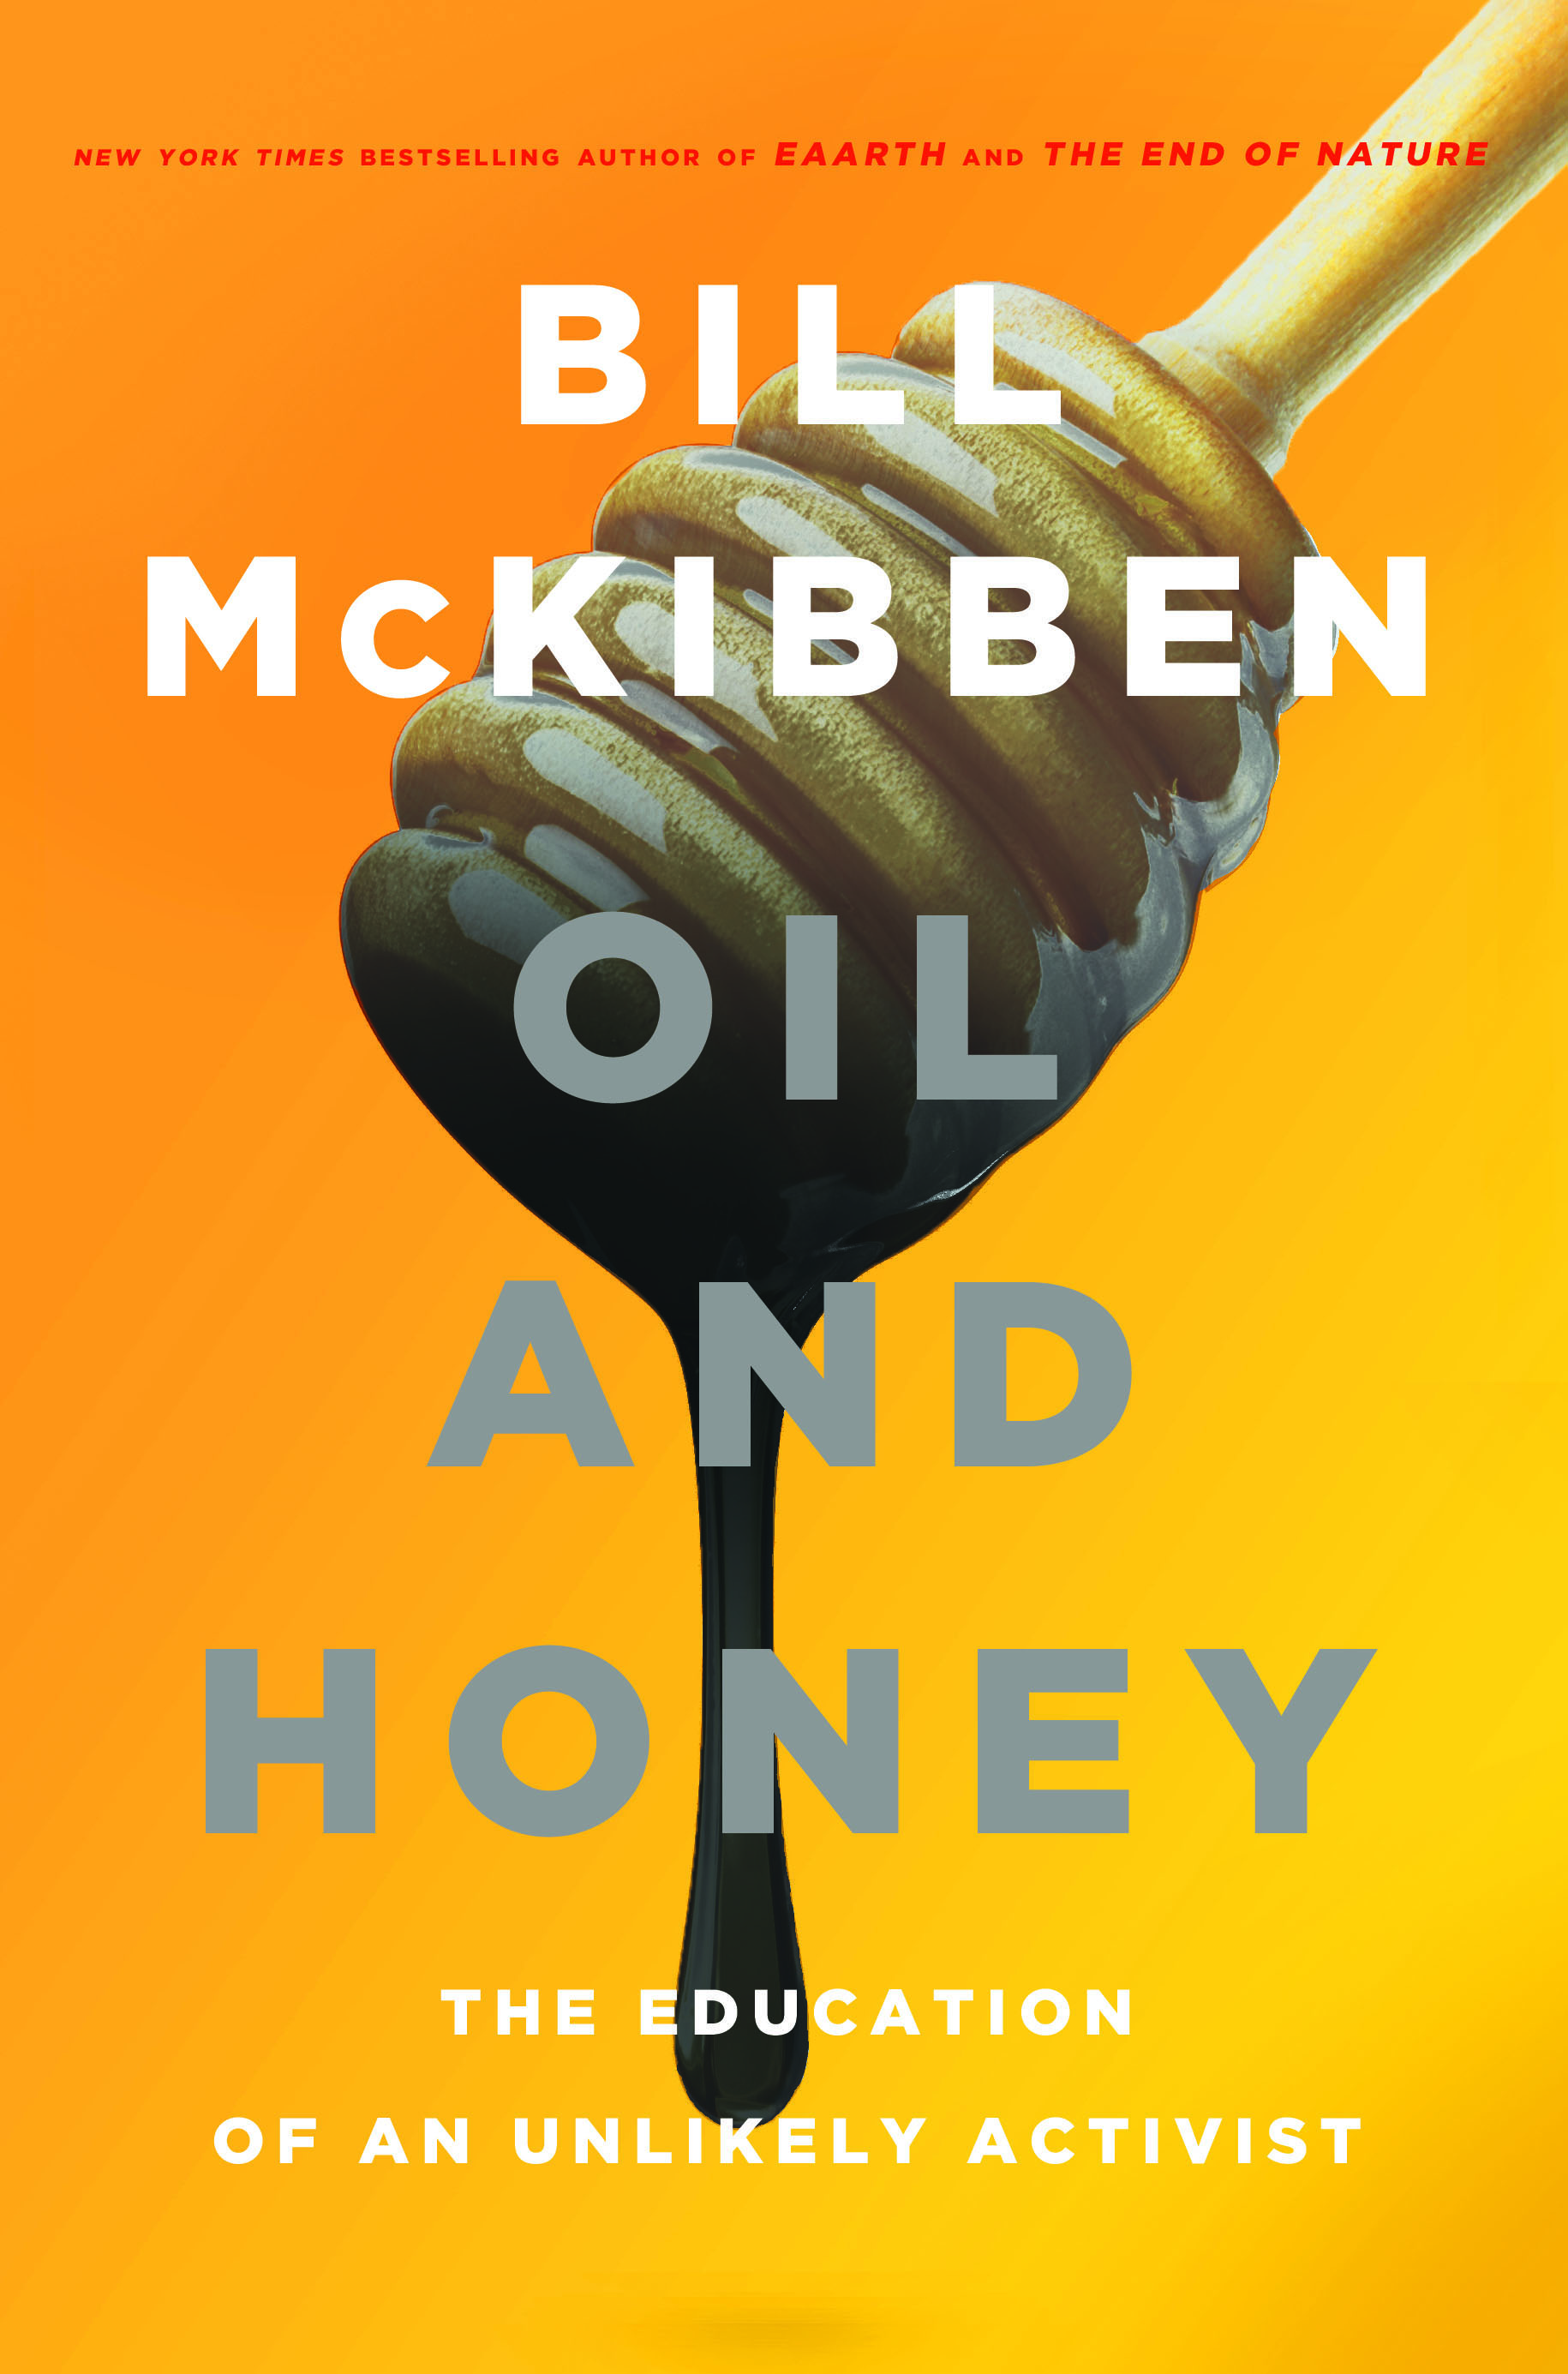 Brooklyn Book Festival Bookend Event & Book Launch: Oil and Honey by Bill McKibben